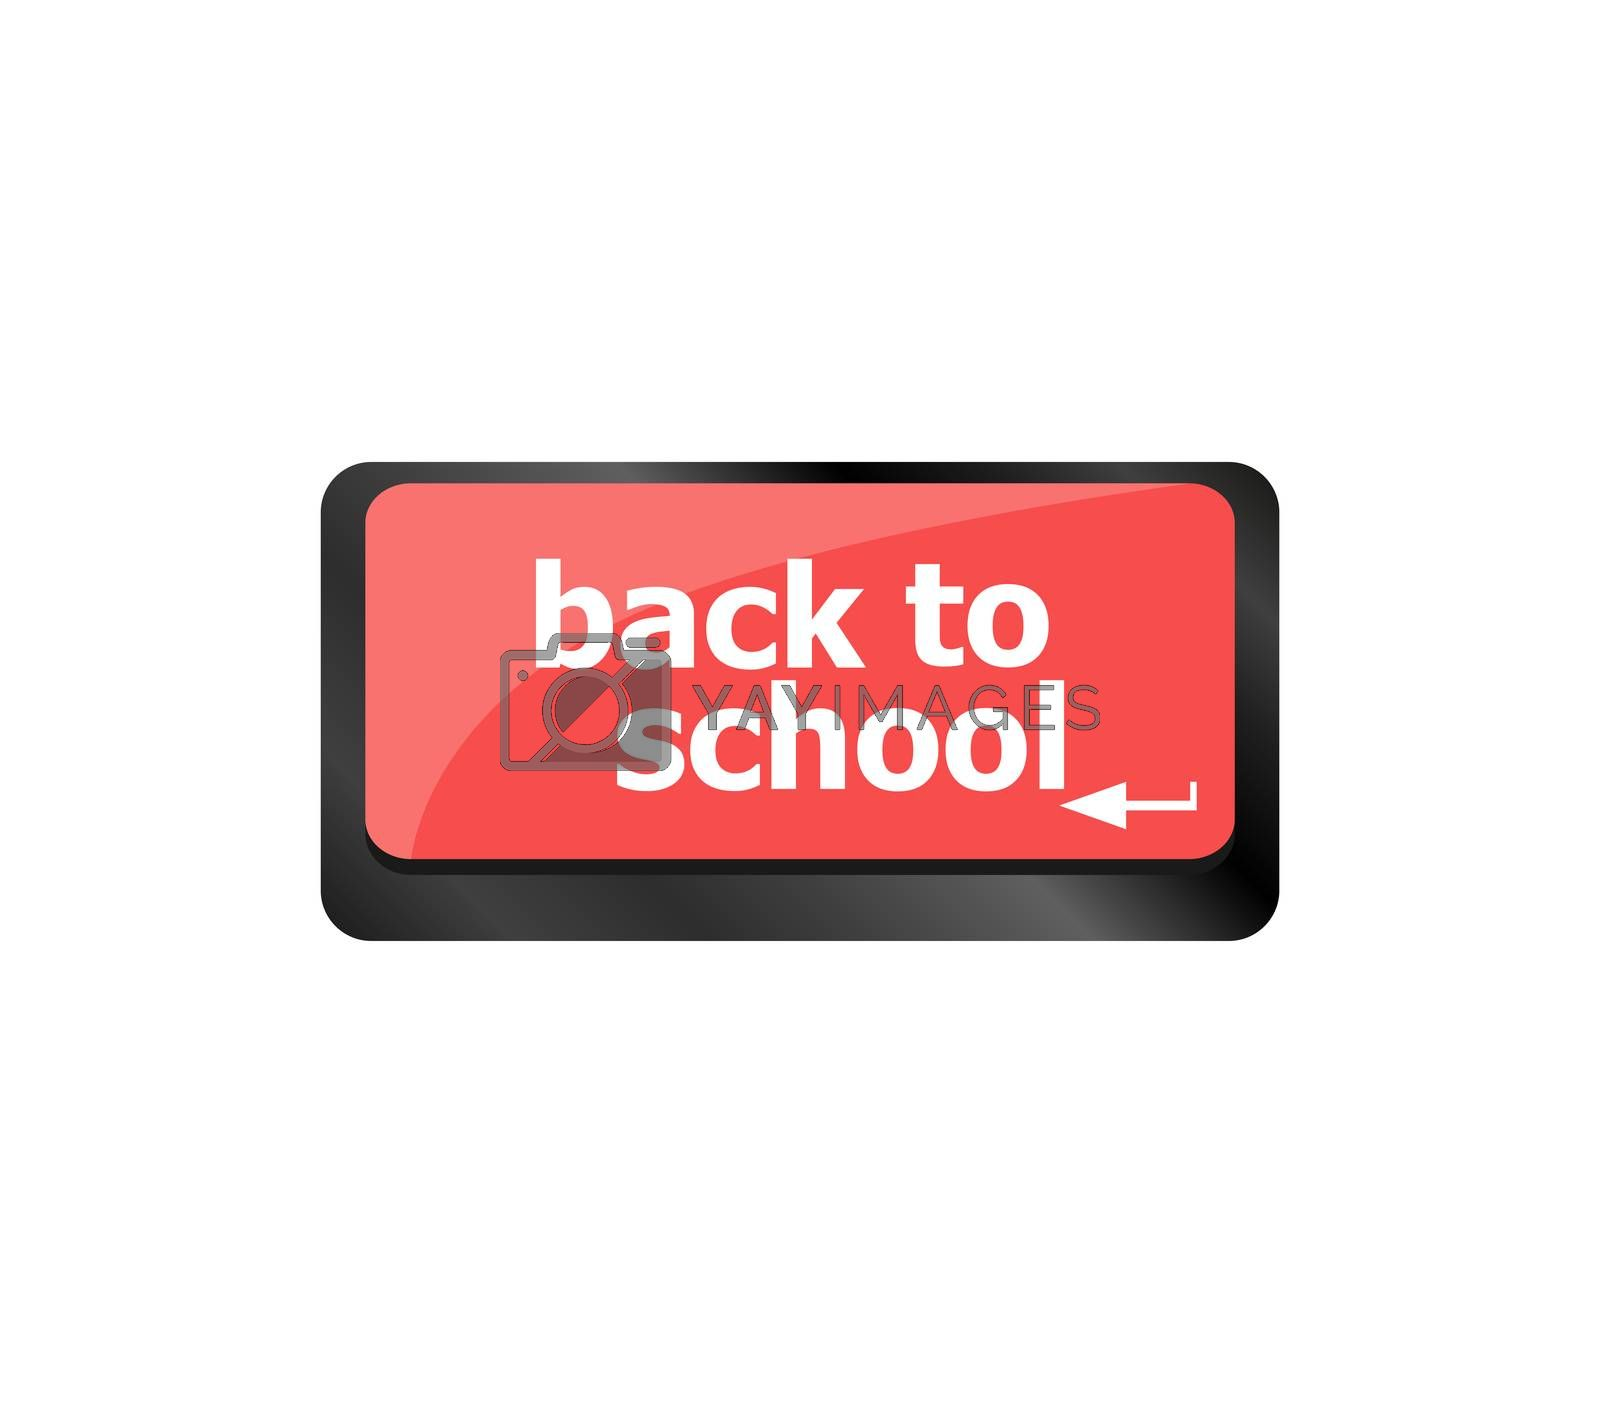 Back to school key on computer keyboard